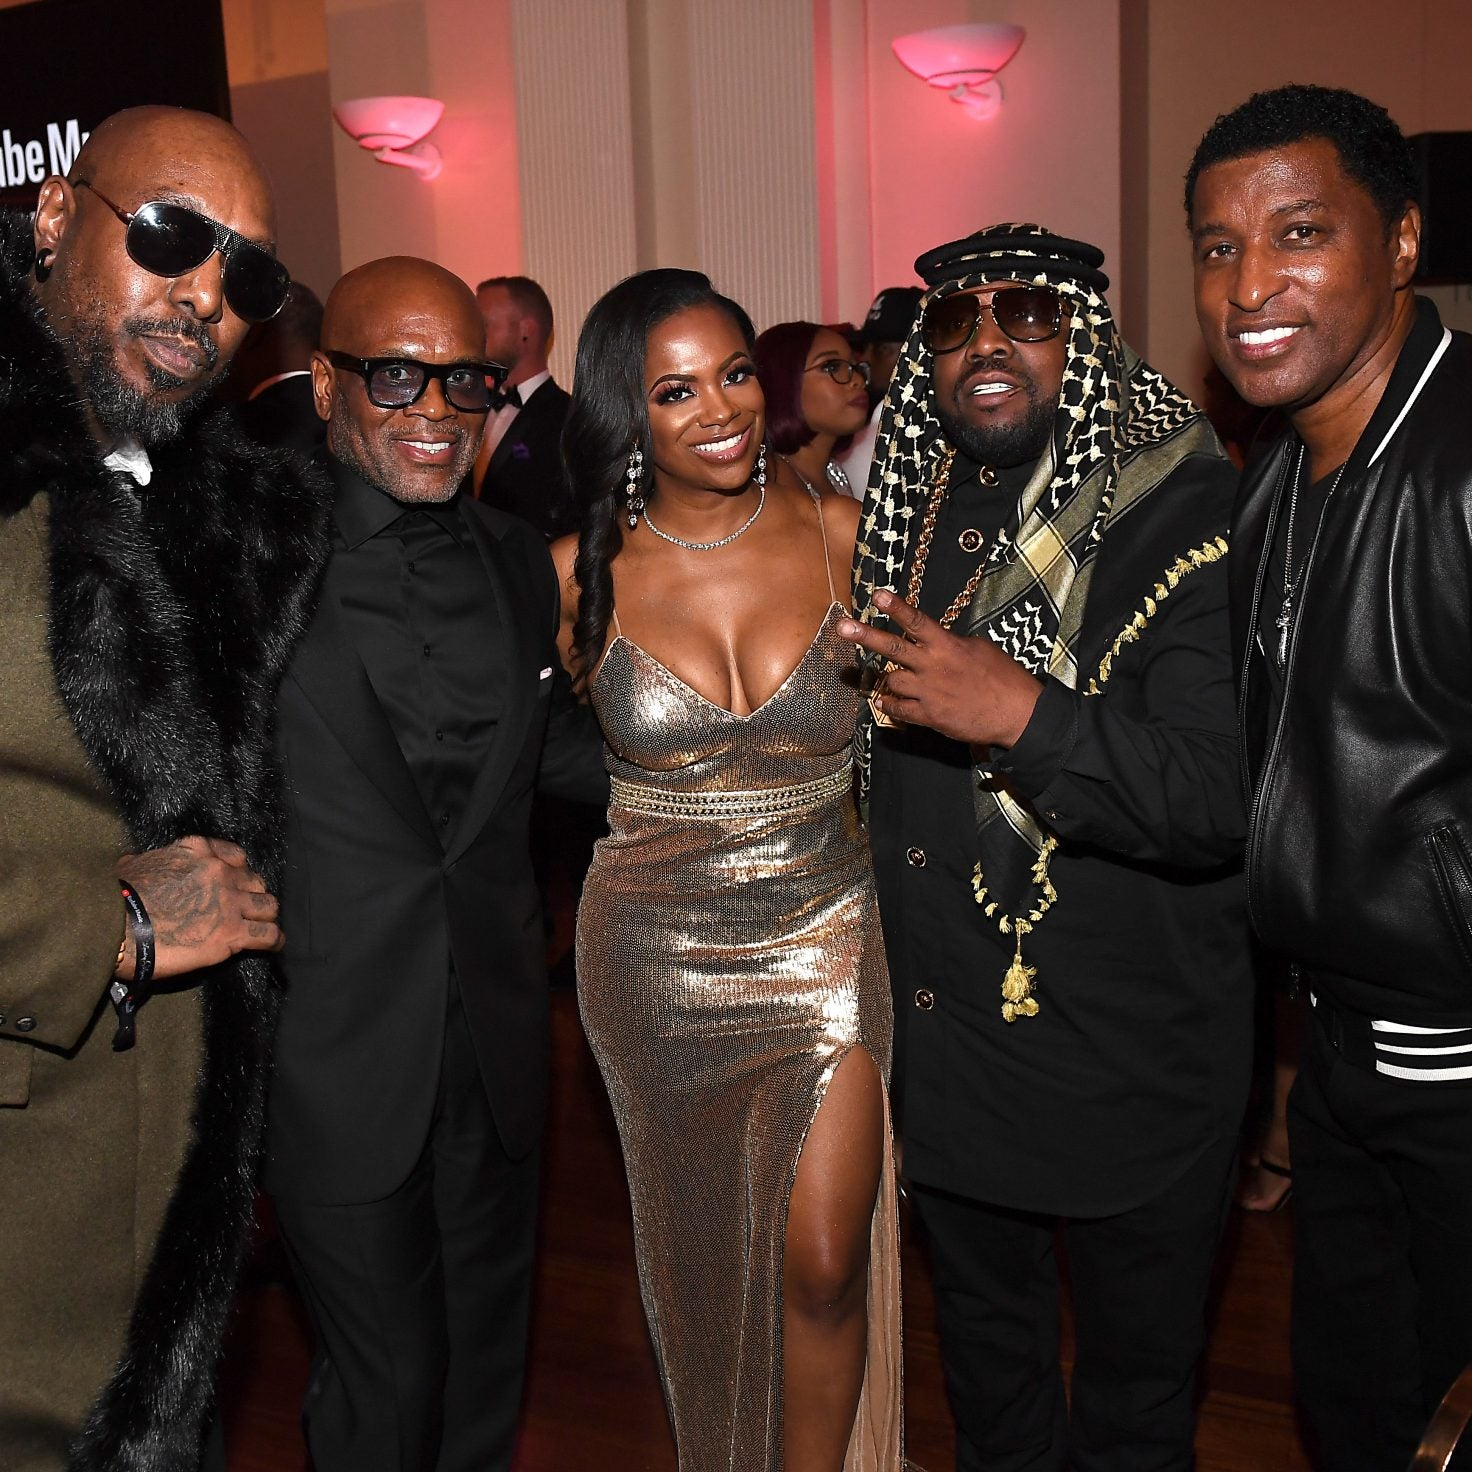 It Seems Every Black Celebrity In Atlanta Gathered To Honor LaFace Records At YouTube Music's Leaders & Legends Ball